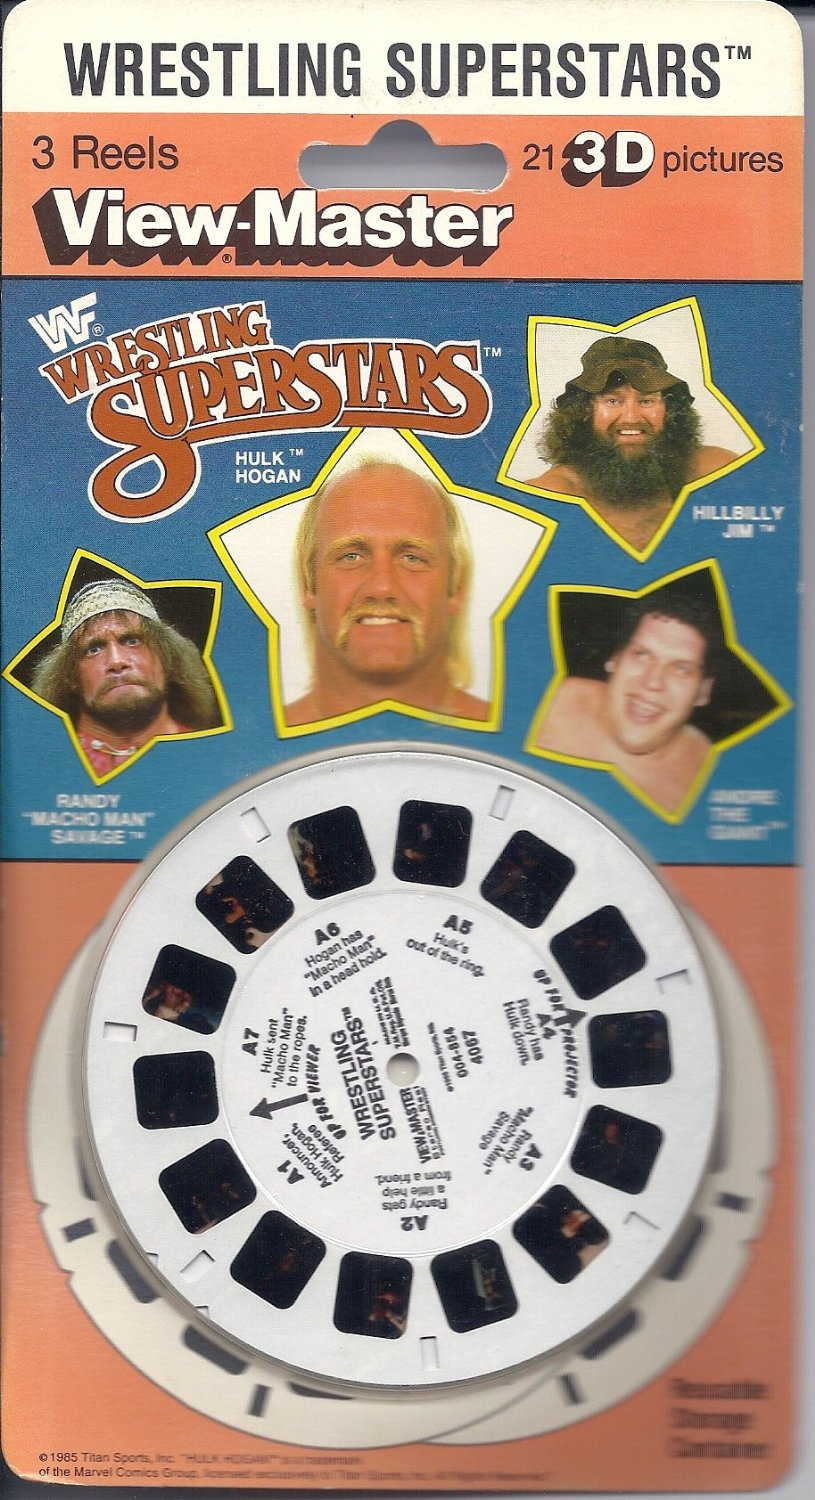 WWF View-Master reels in box